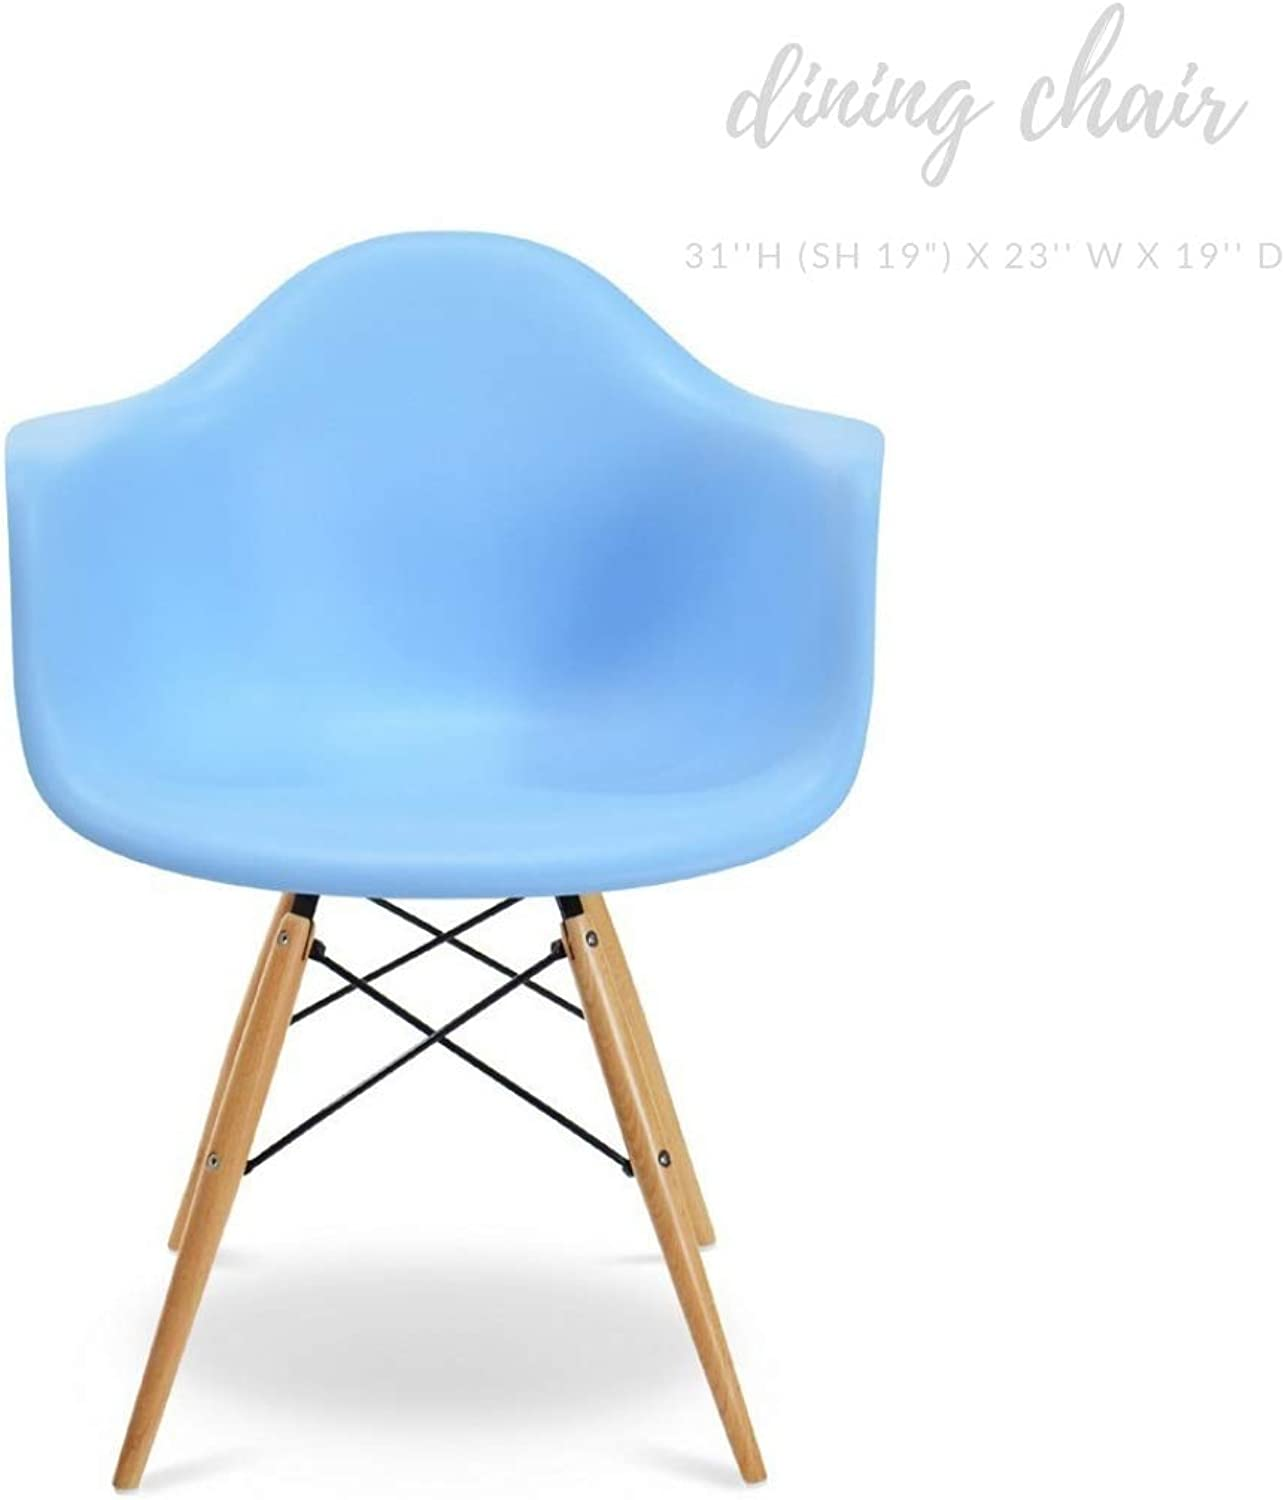 Take Me Home Furniture Eiffel Style Bucket Chair with Wood Legs, Light bluee, Dining Chair